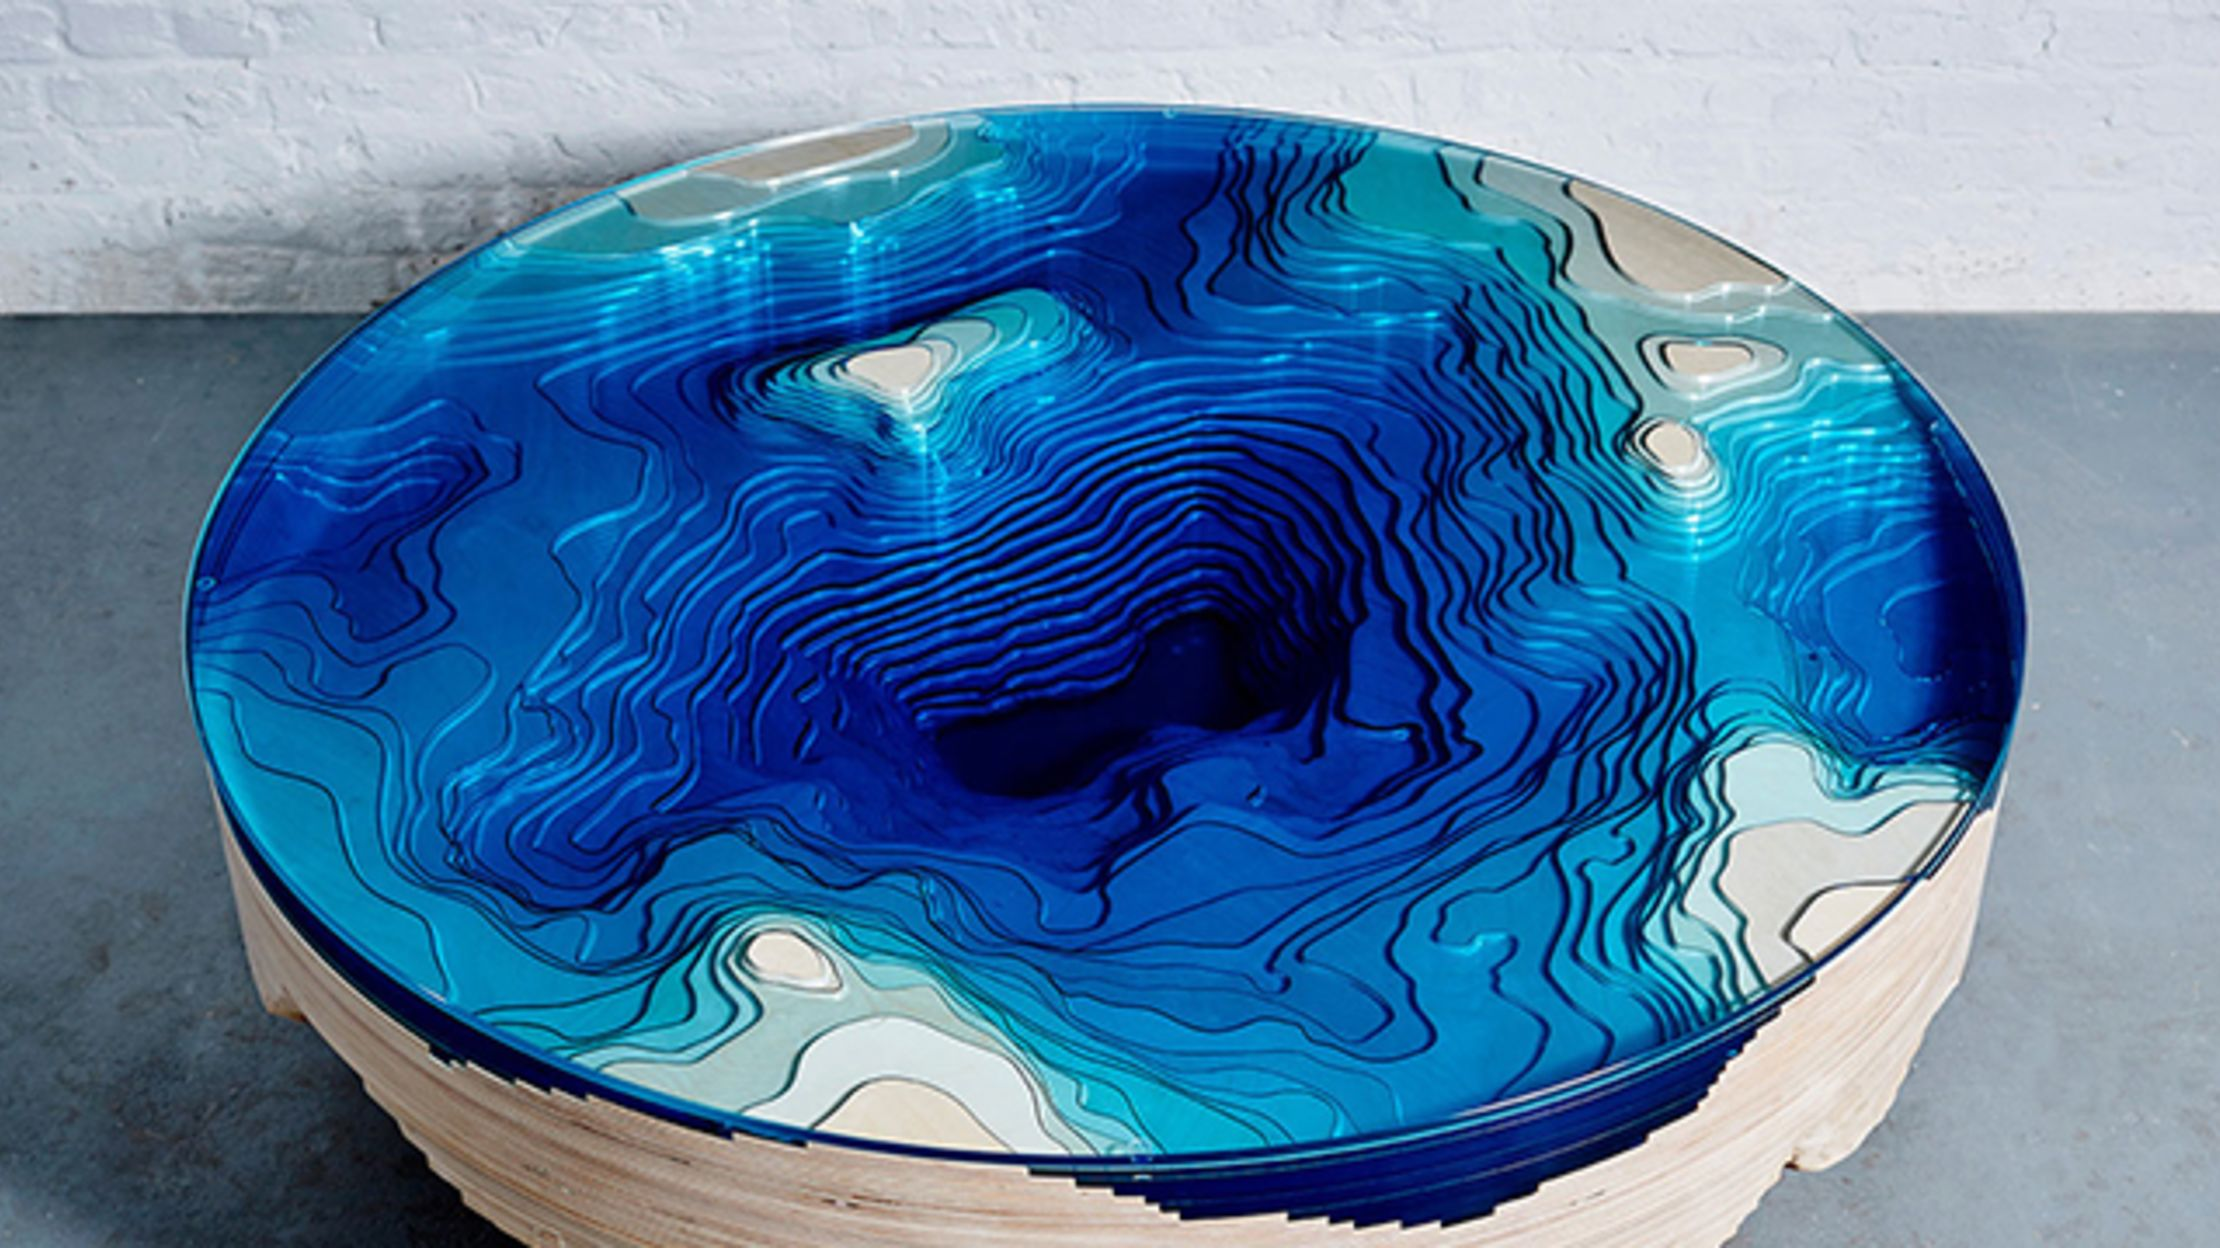 This Table Lets You Stare Into the Ocean Depths Over Coffee